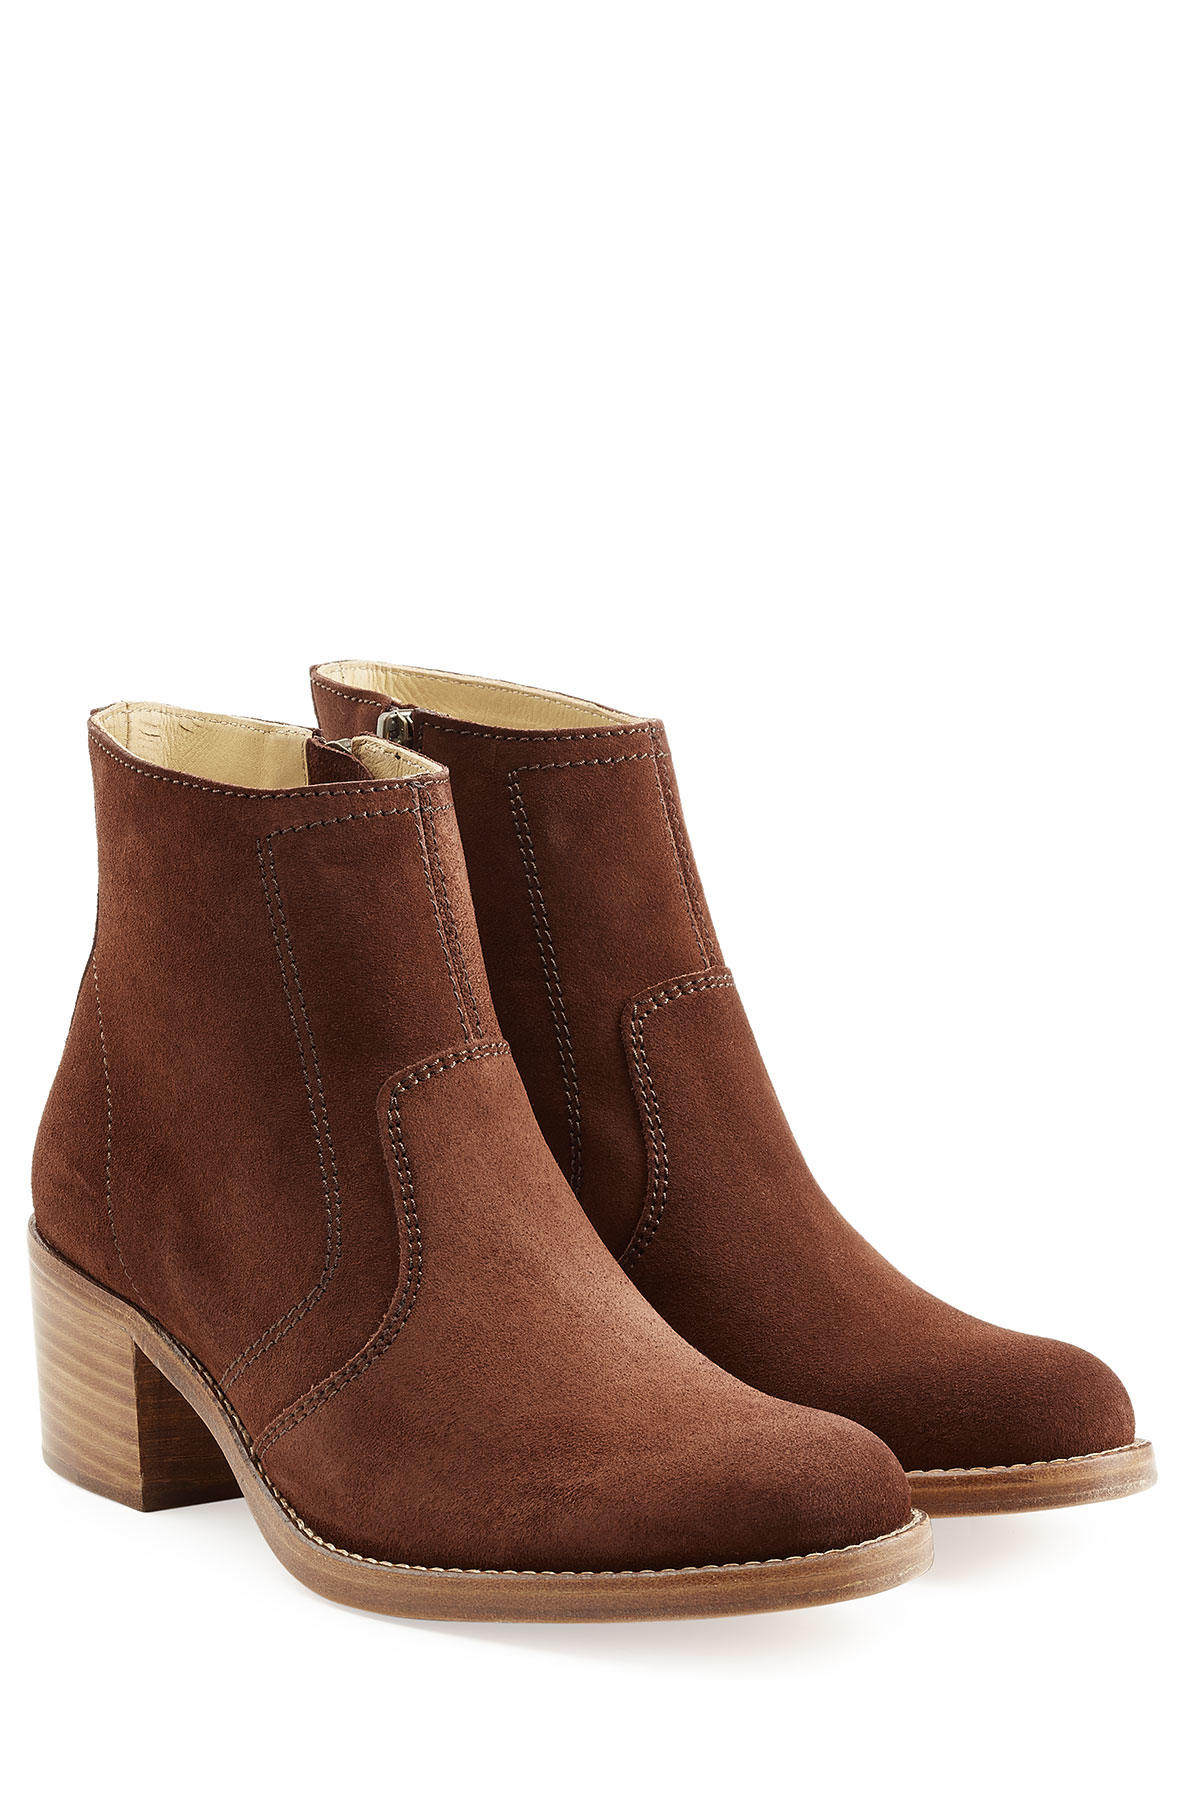 a p c suede ankle boots brown in brown lyst